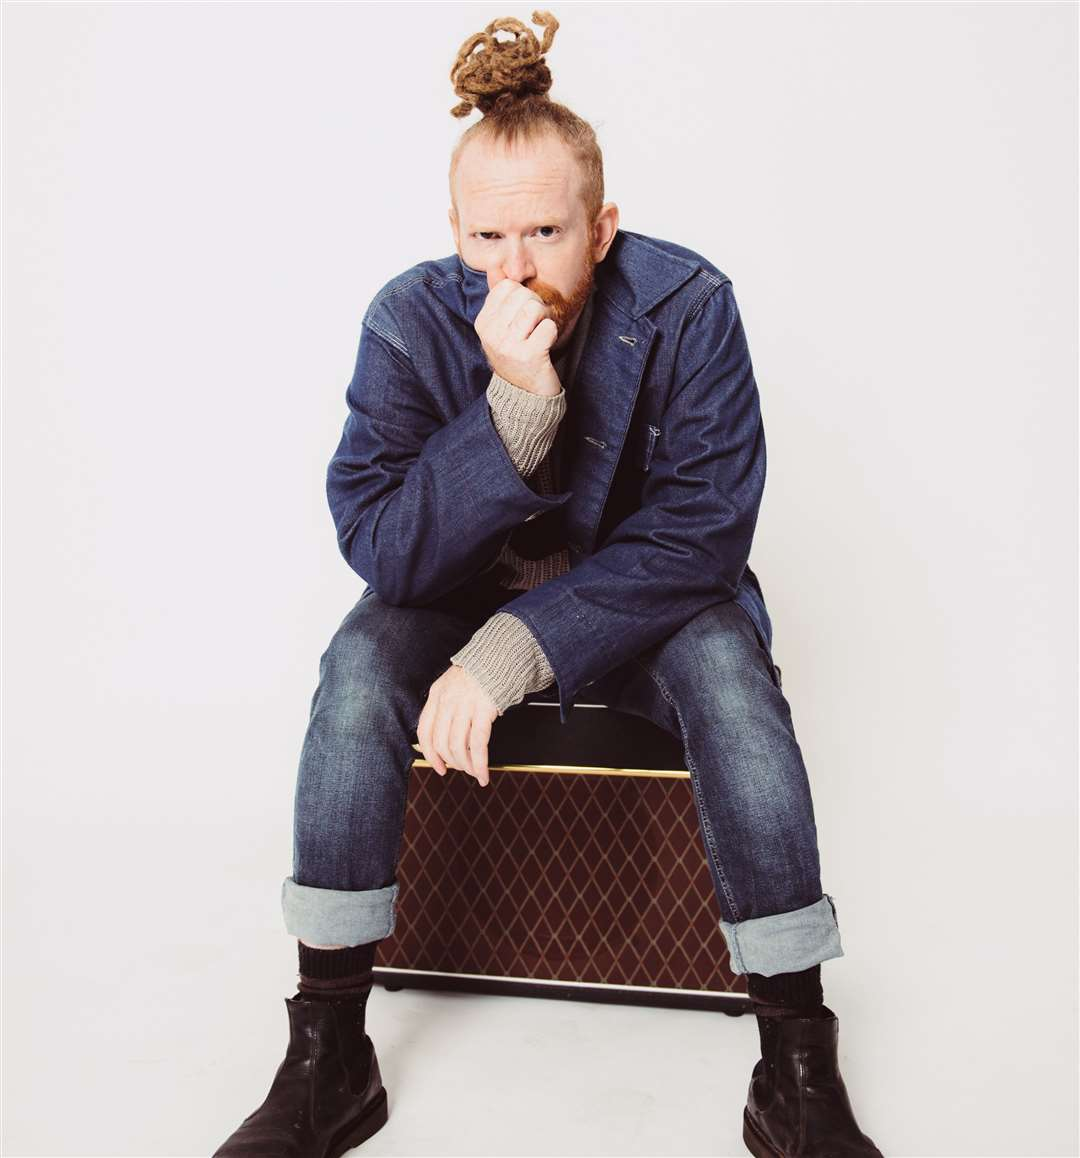 Newton Faulkner has been starring in Green Day's musical, American Idiot